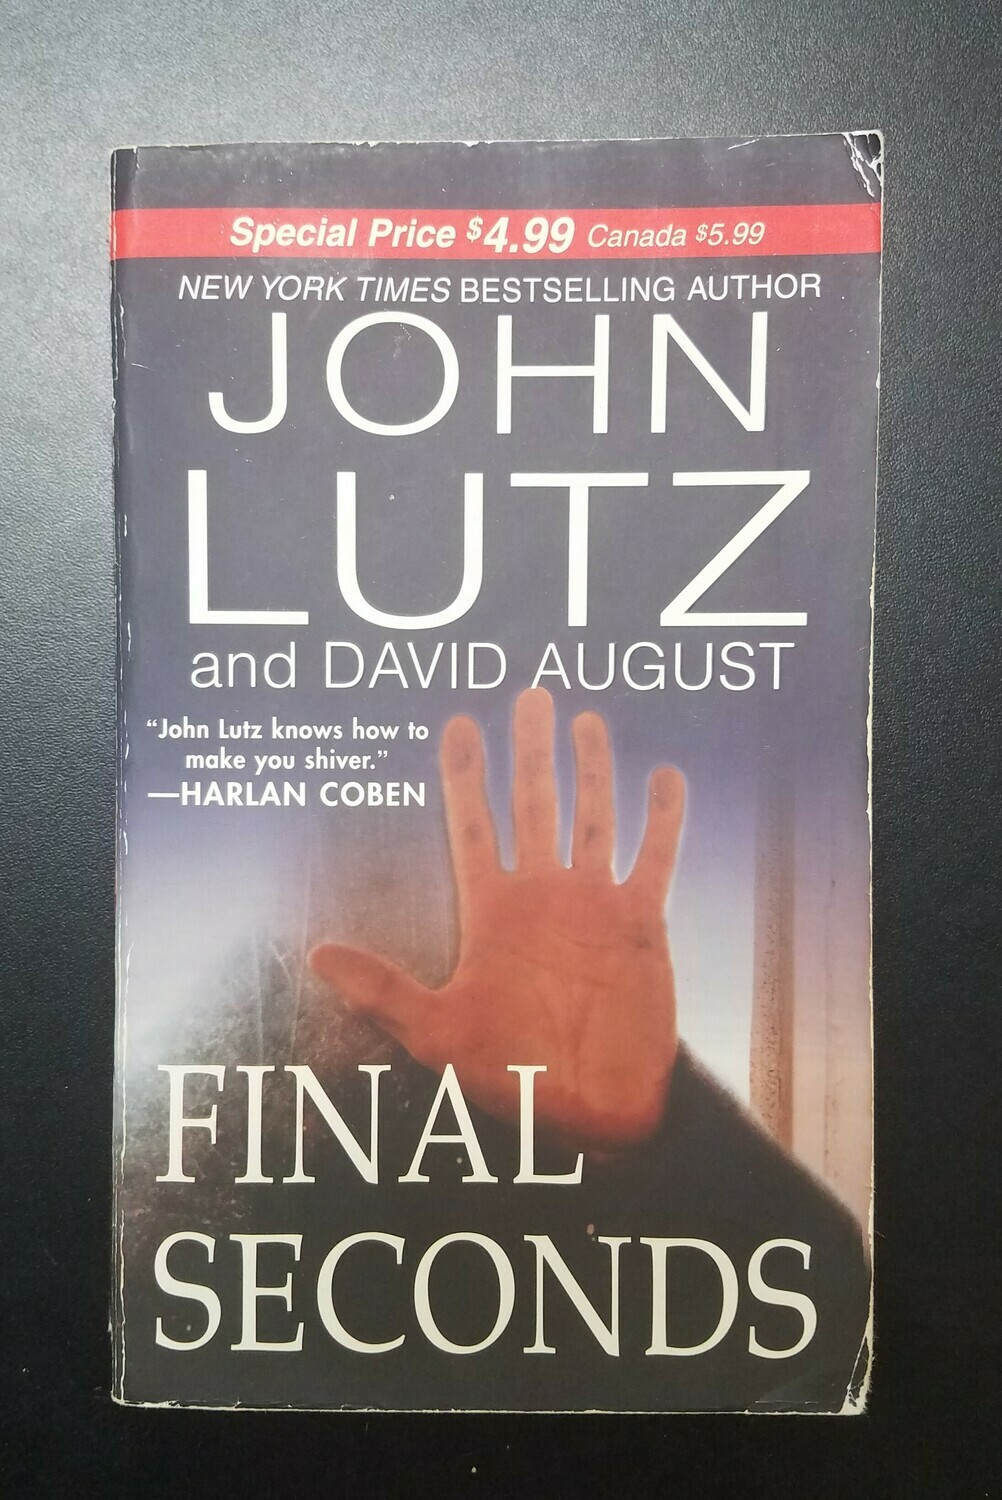 Final Seconds by John Lutz